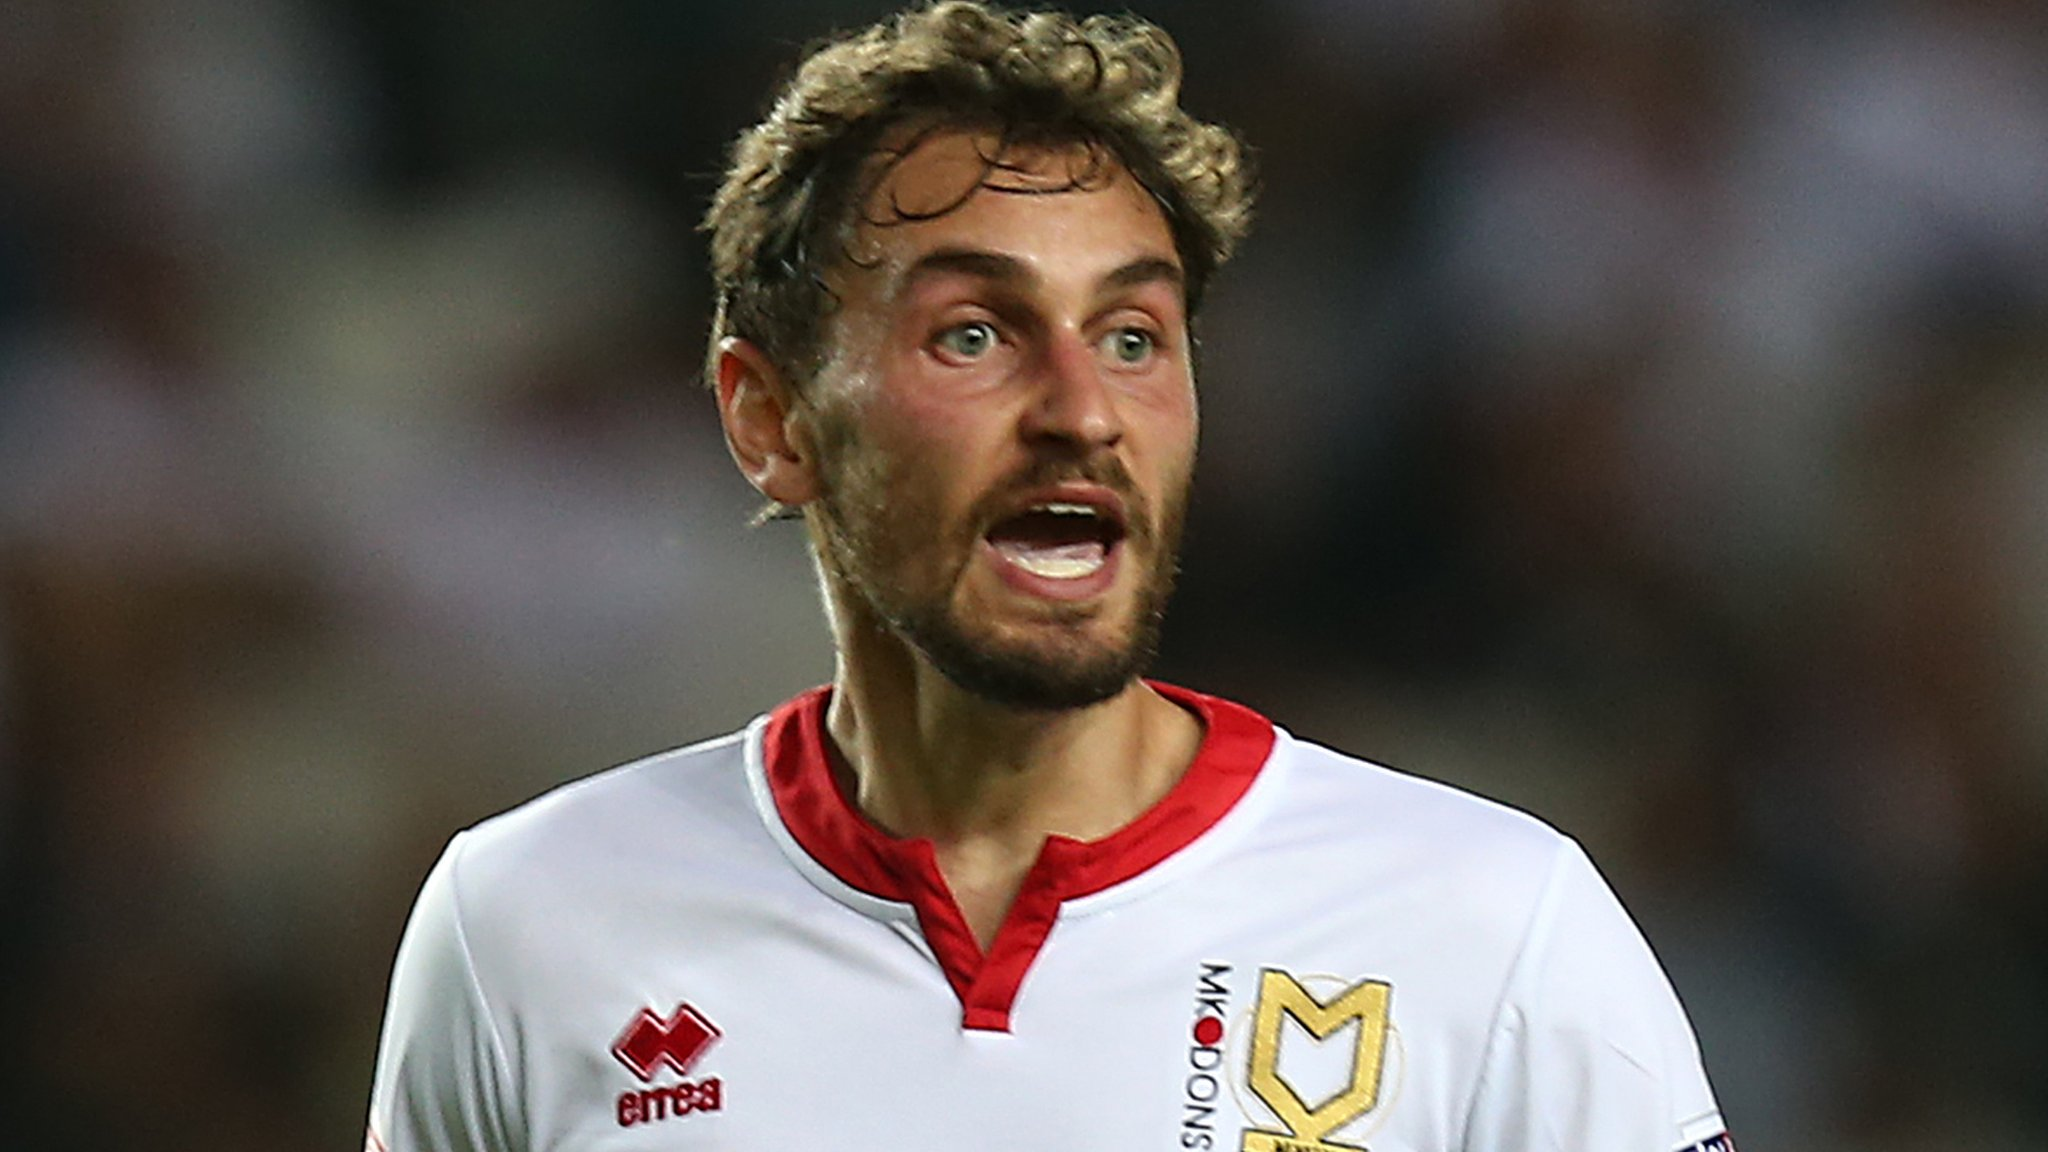 Upson joins Bristol Rovers from MK Dons